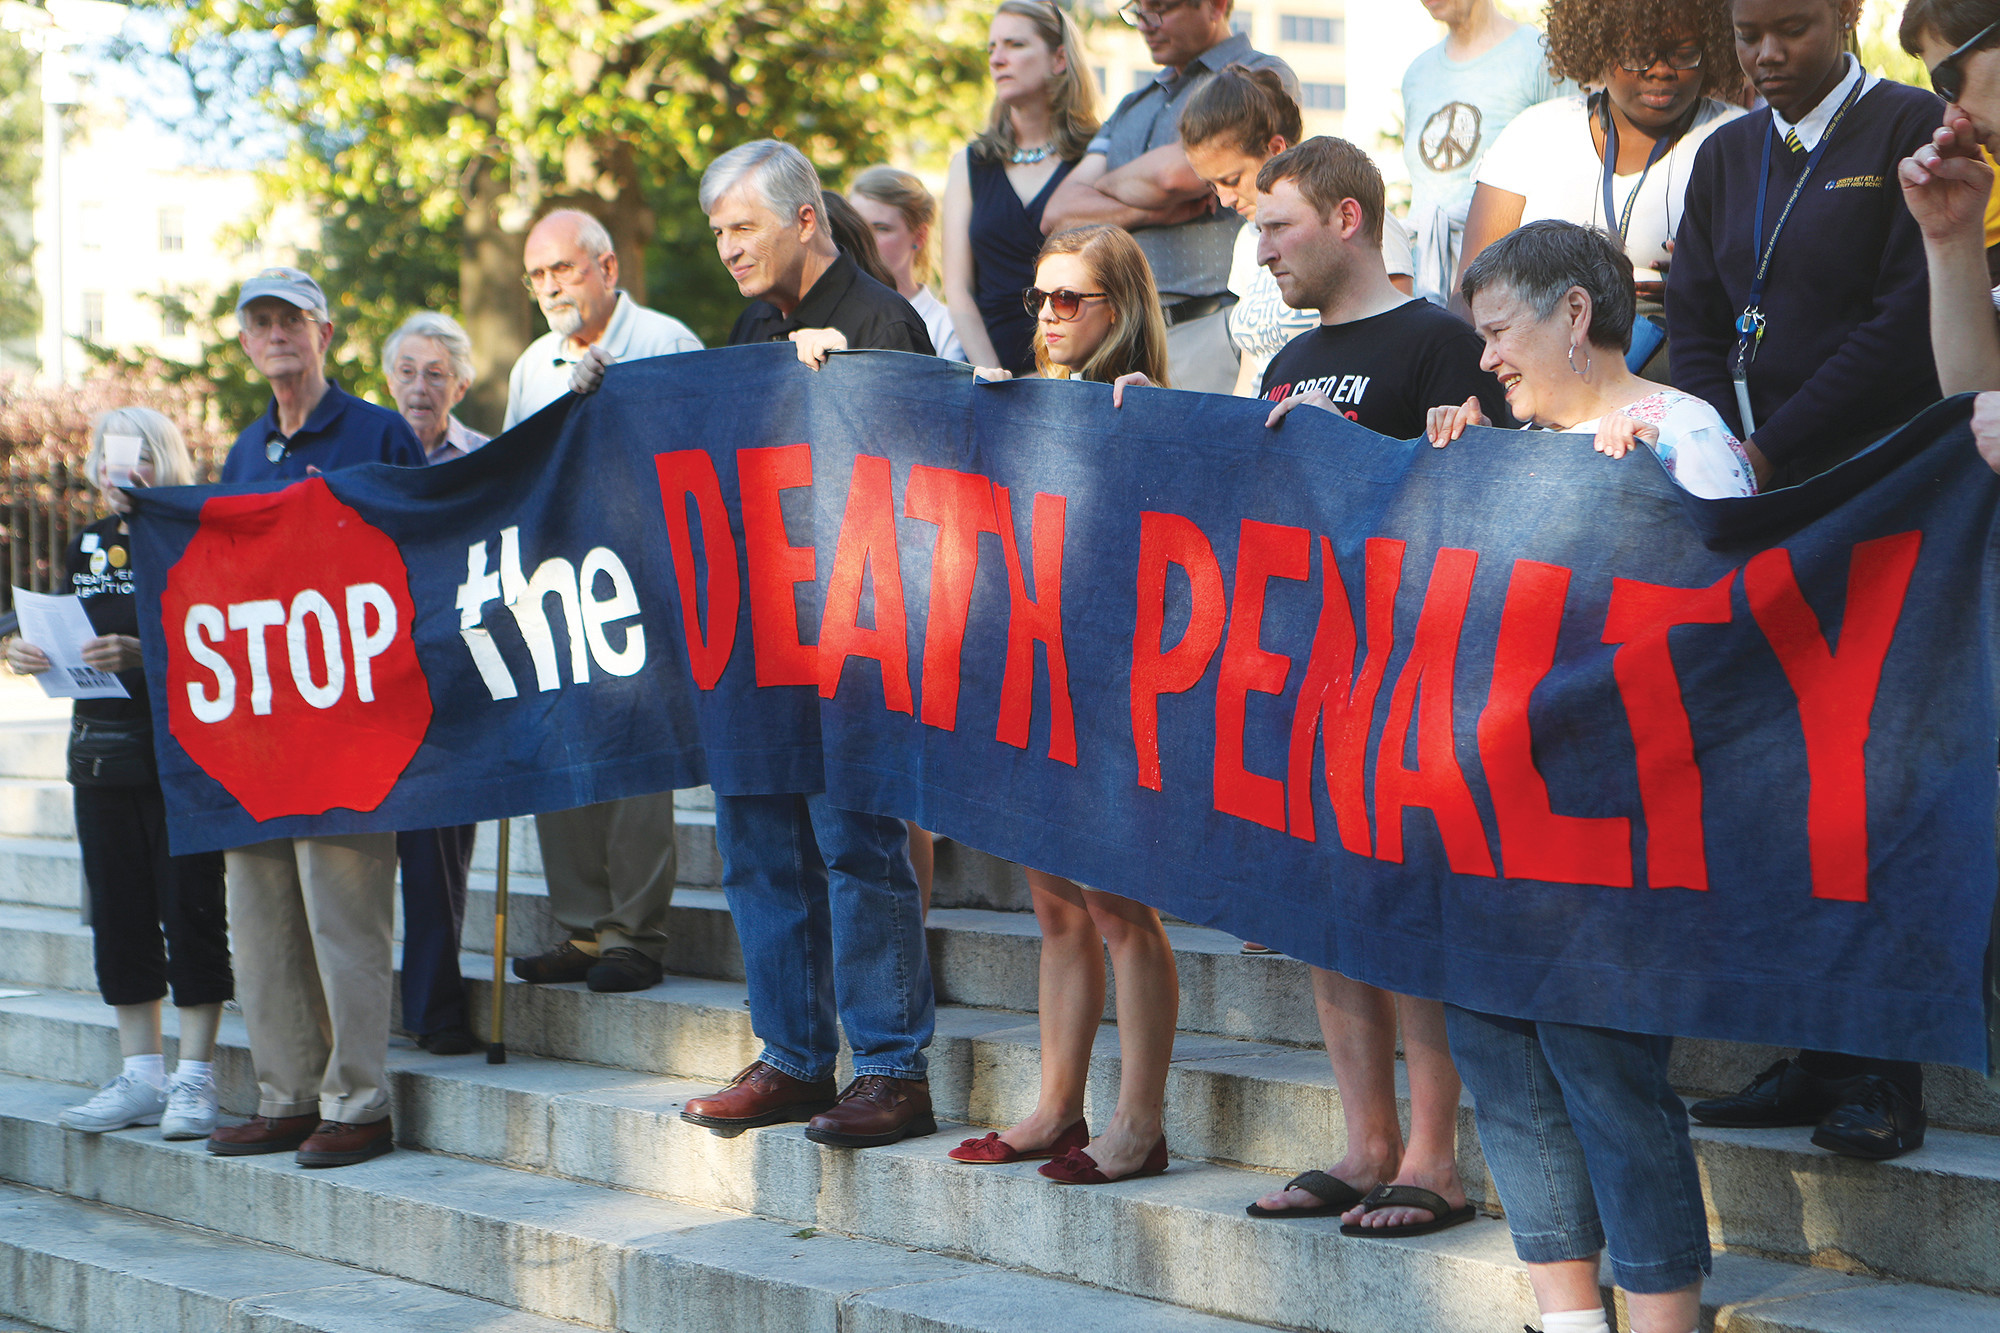 Death penalty opponents protest the planned execution of J.W. Ledford for the 1992 murder of his elderly neighbor at the State Capitol on Tuesday in Atlanta.